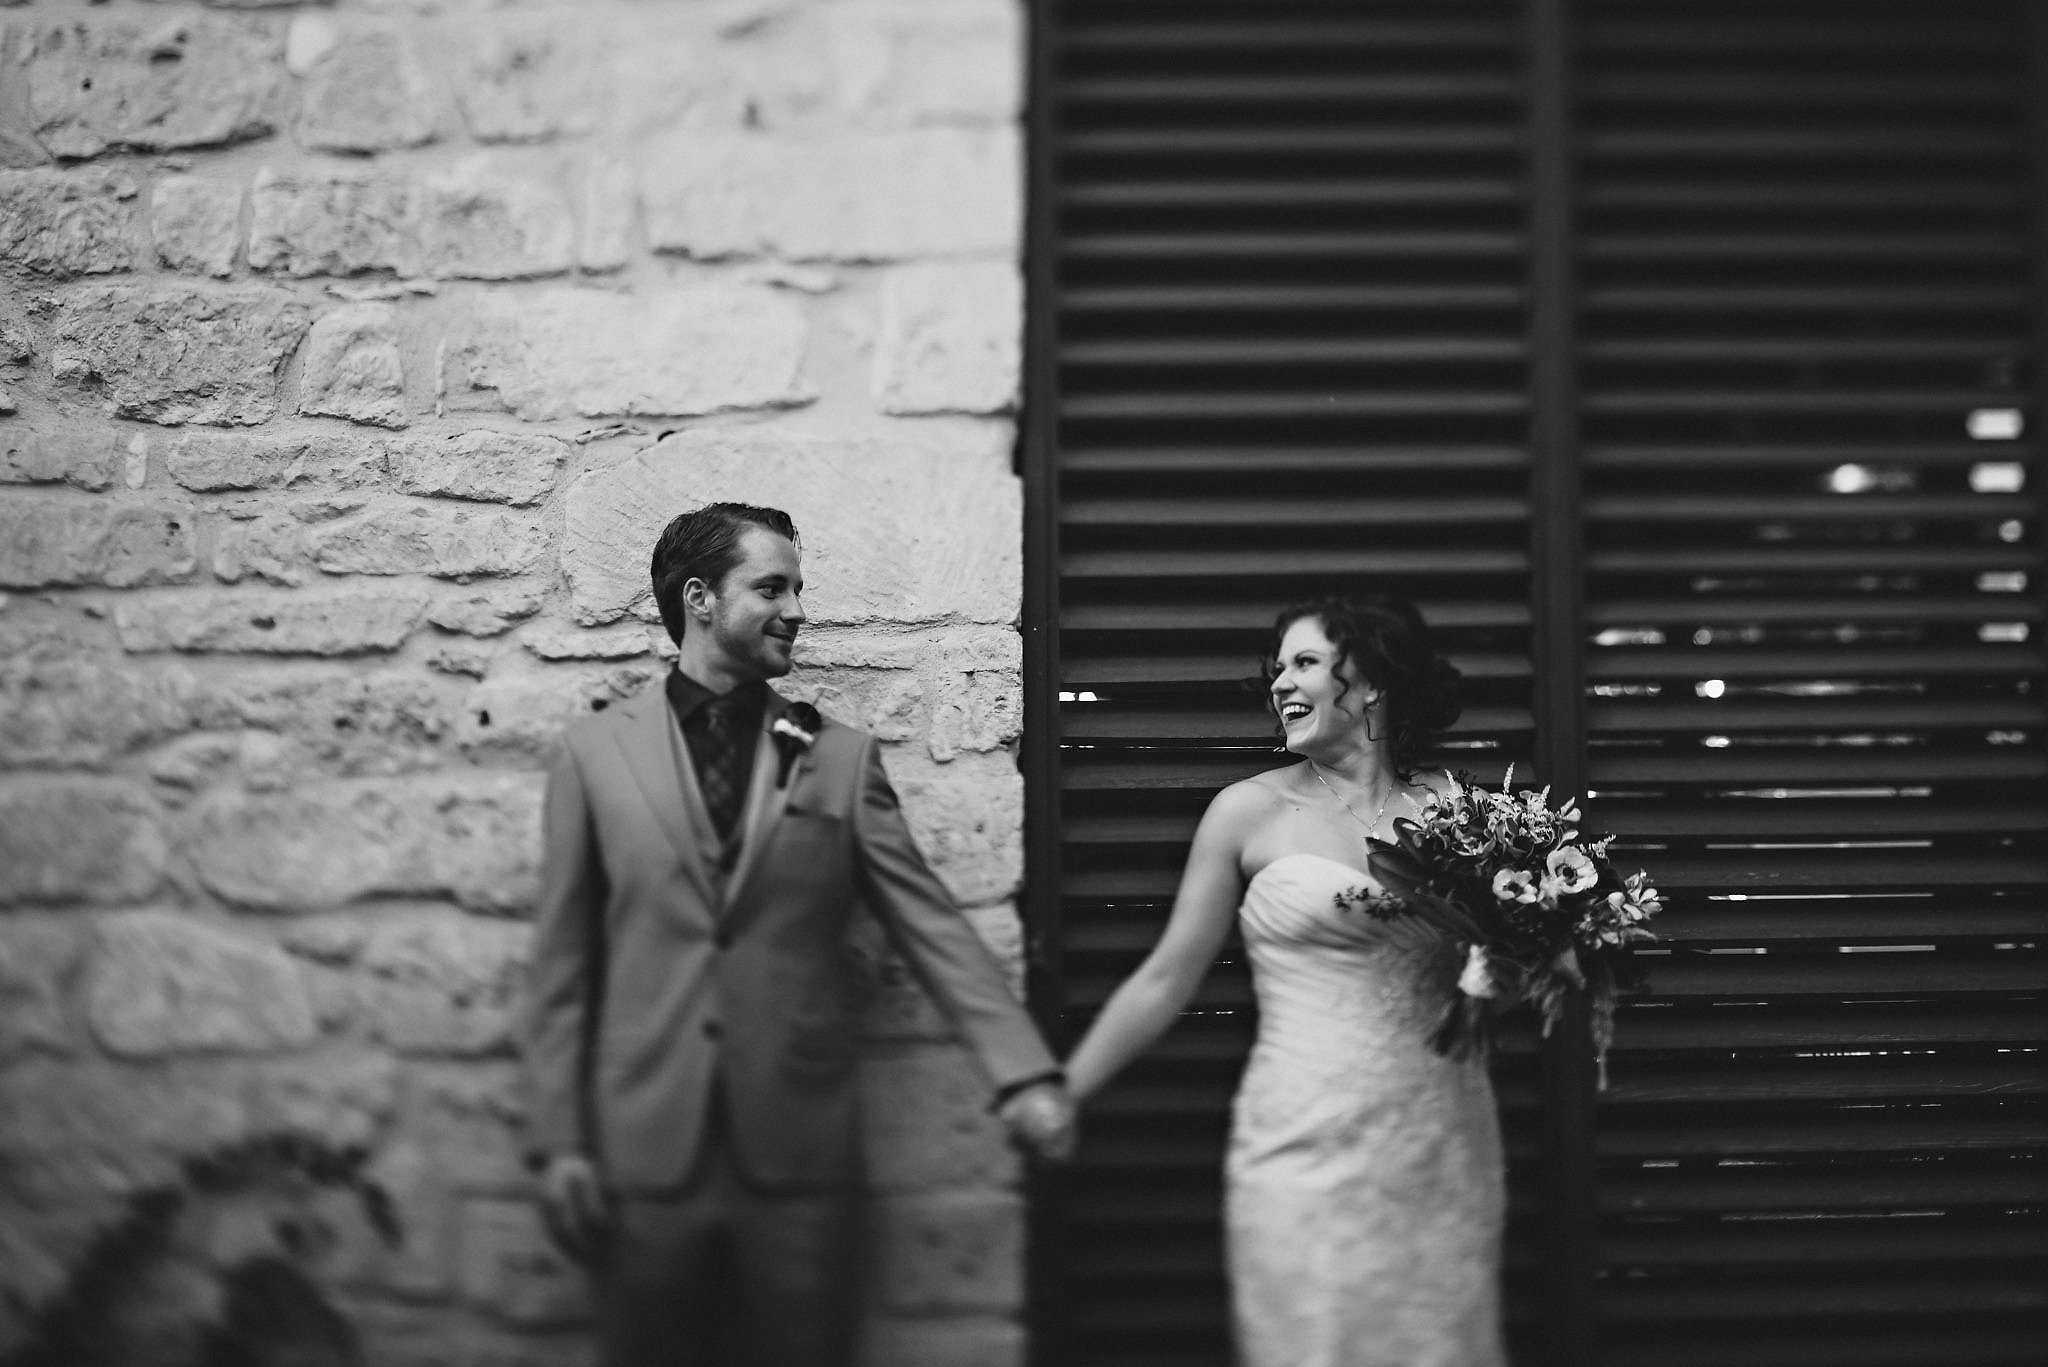 Eirik Halvorsen rustic wedding Fredericksburg Austin Texas wedding photographer-50.jpg